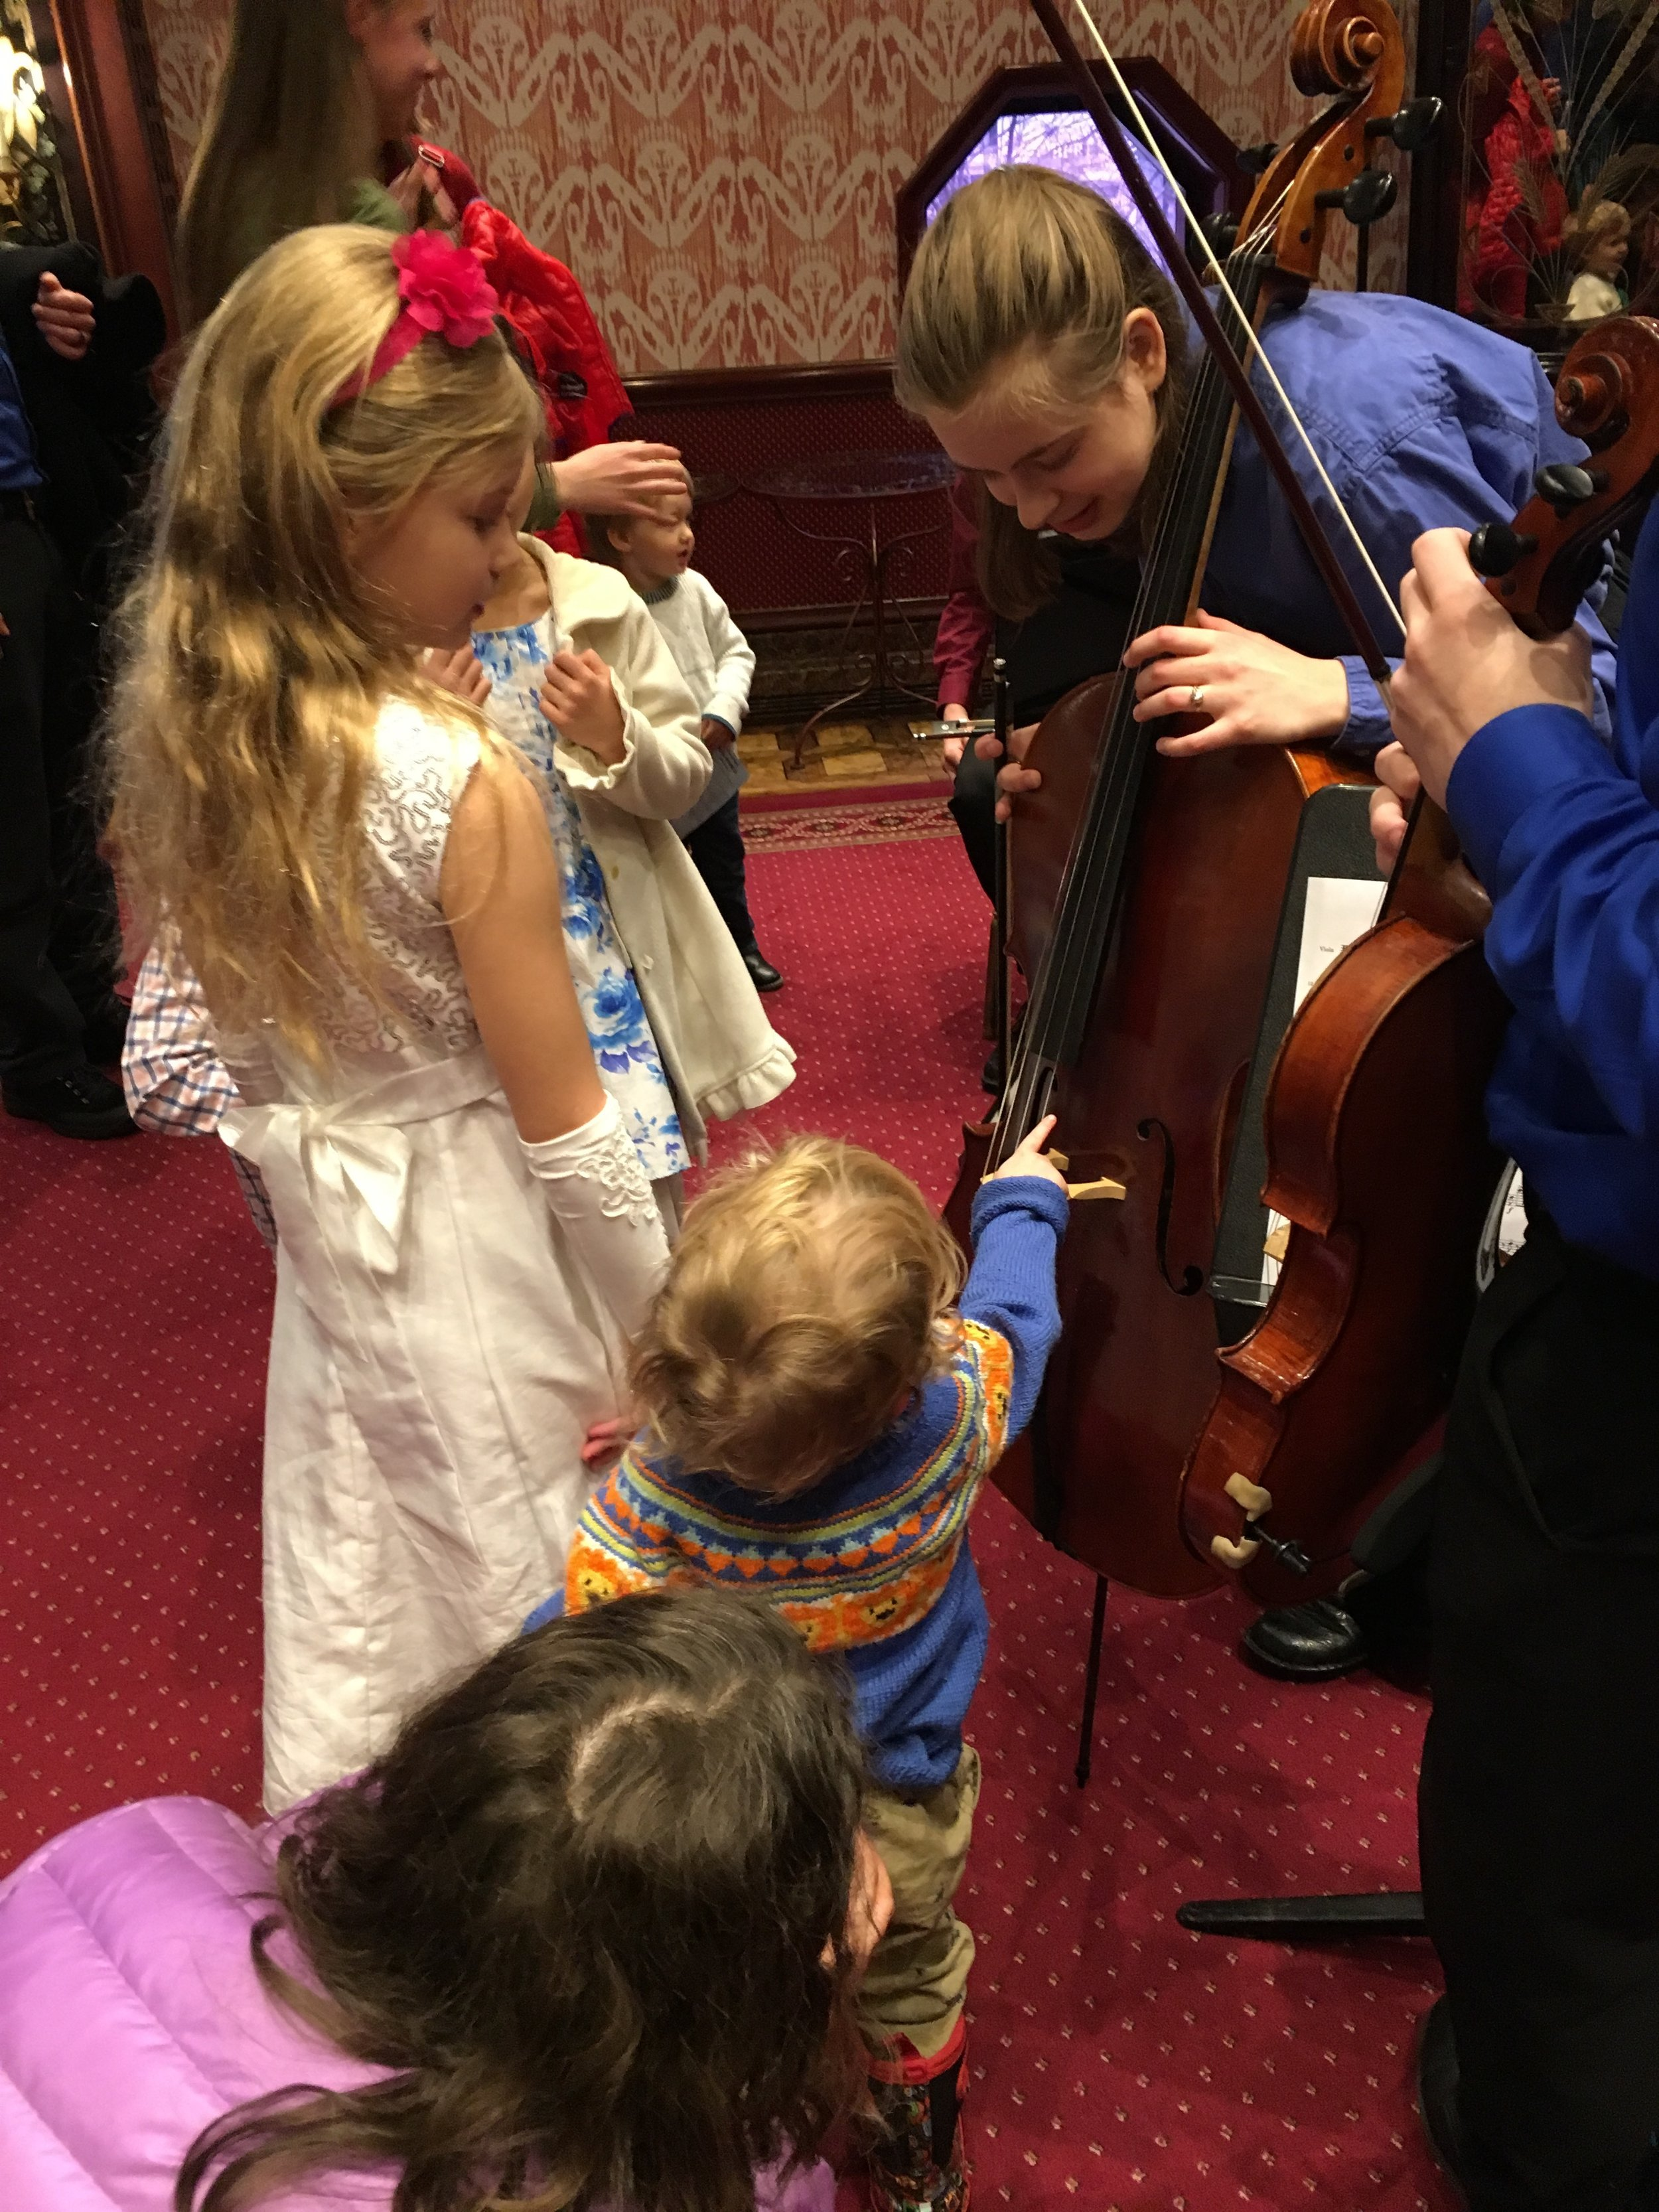 Fiddlesticks Activities Time - Saturday, February 23, 2019Members of TRYPO and PYSO introduced the instruments of a string quartet and performed for our youngest symphony goers, ages 2-5, in this special pre-concert activity time in the Heinz Hall for the Performing Arts Overlook Lounge.